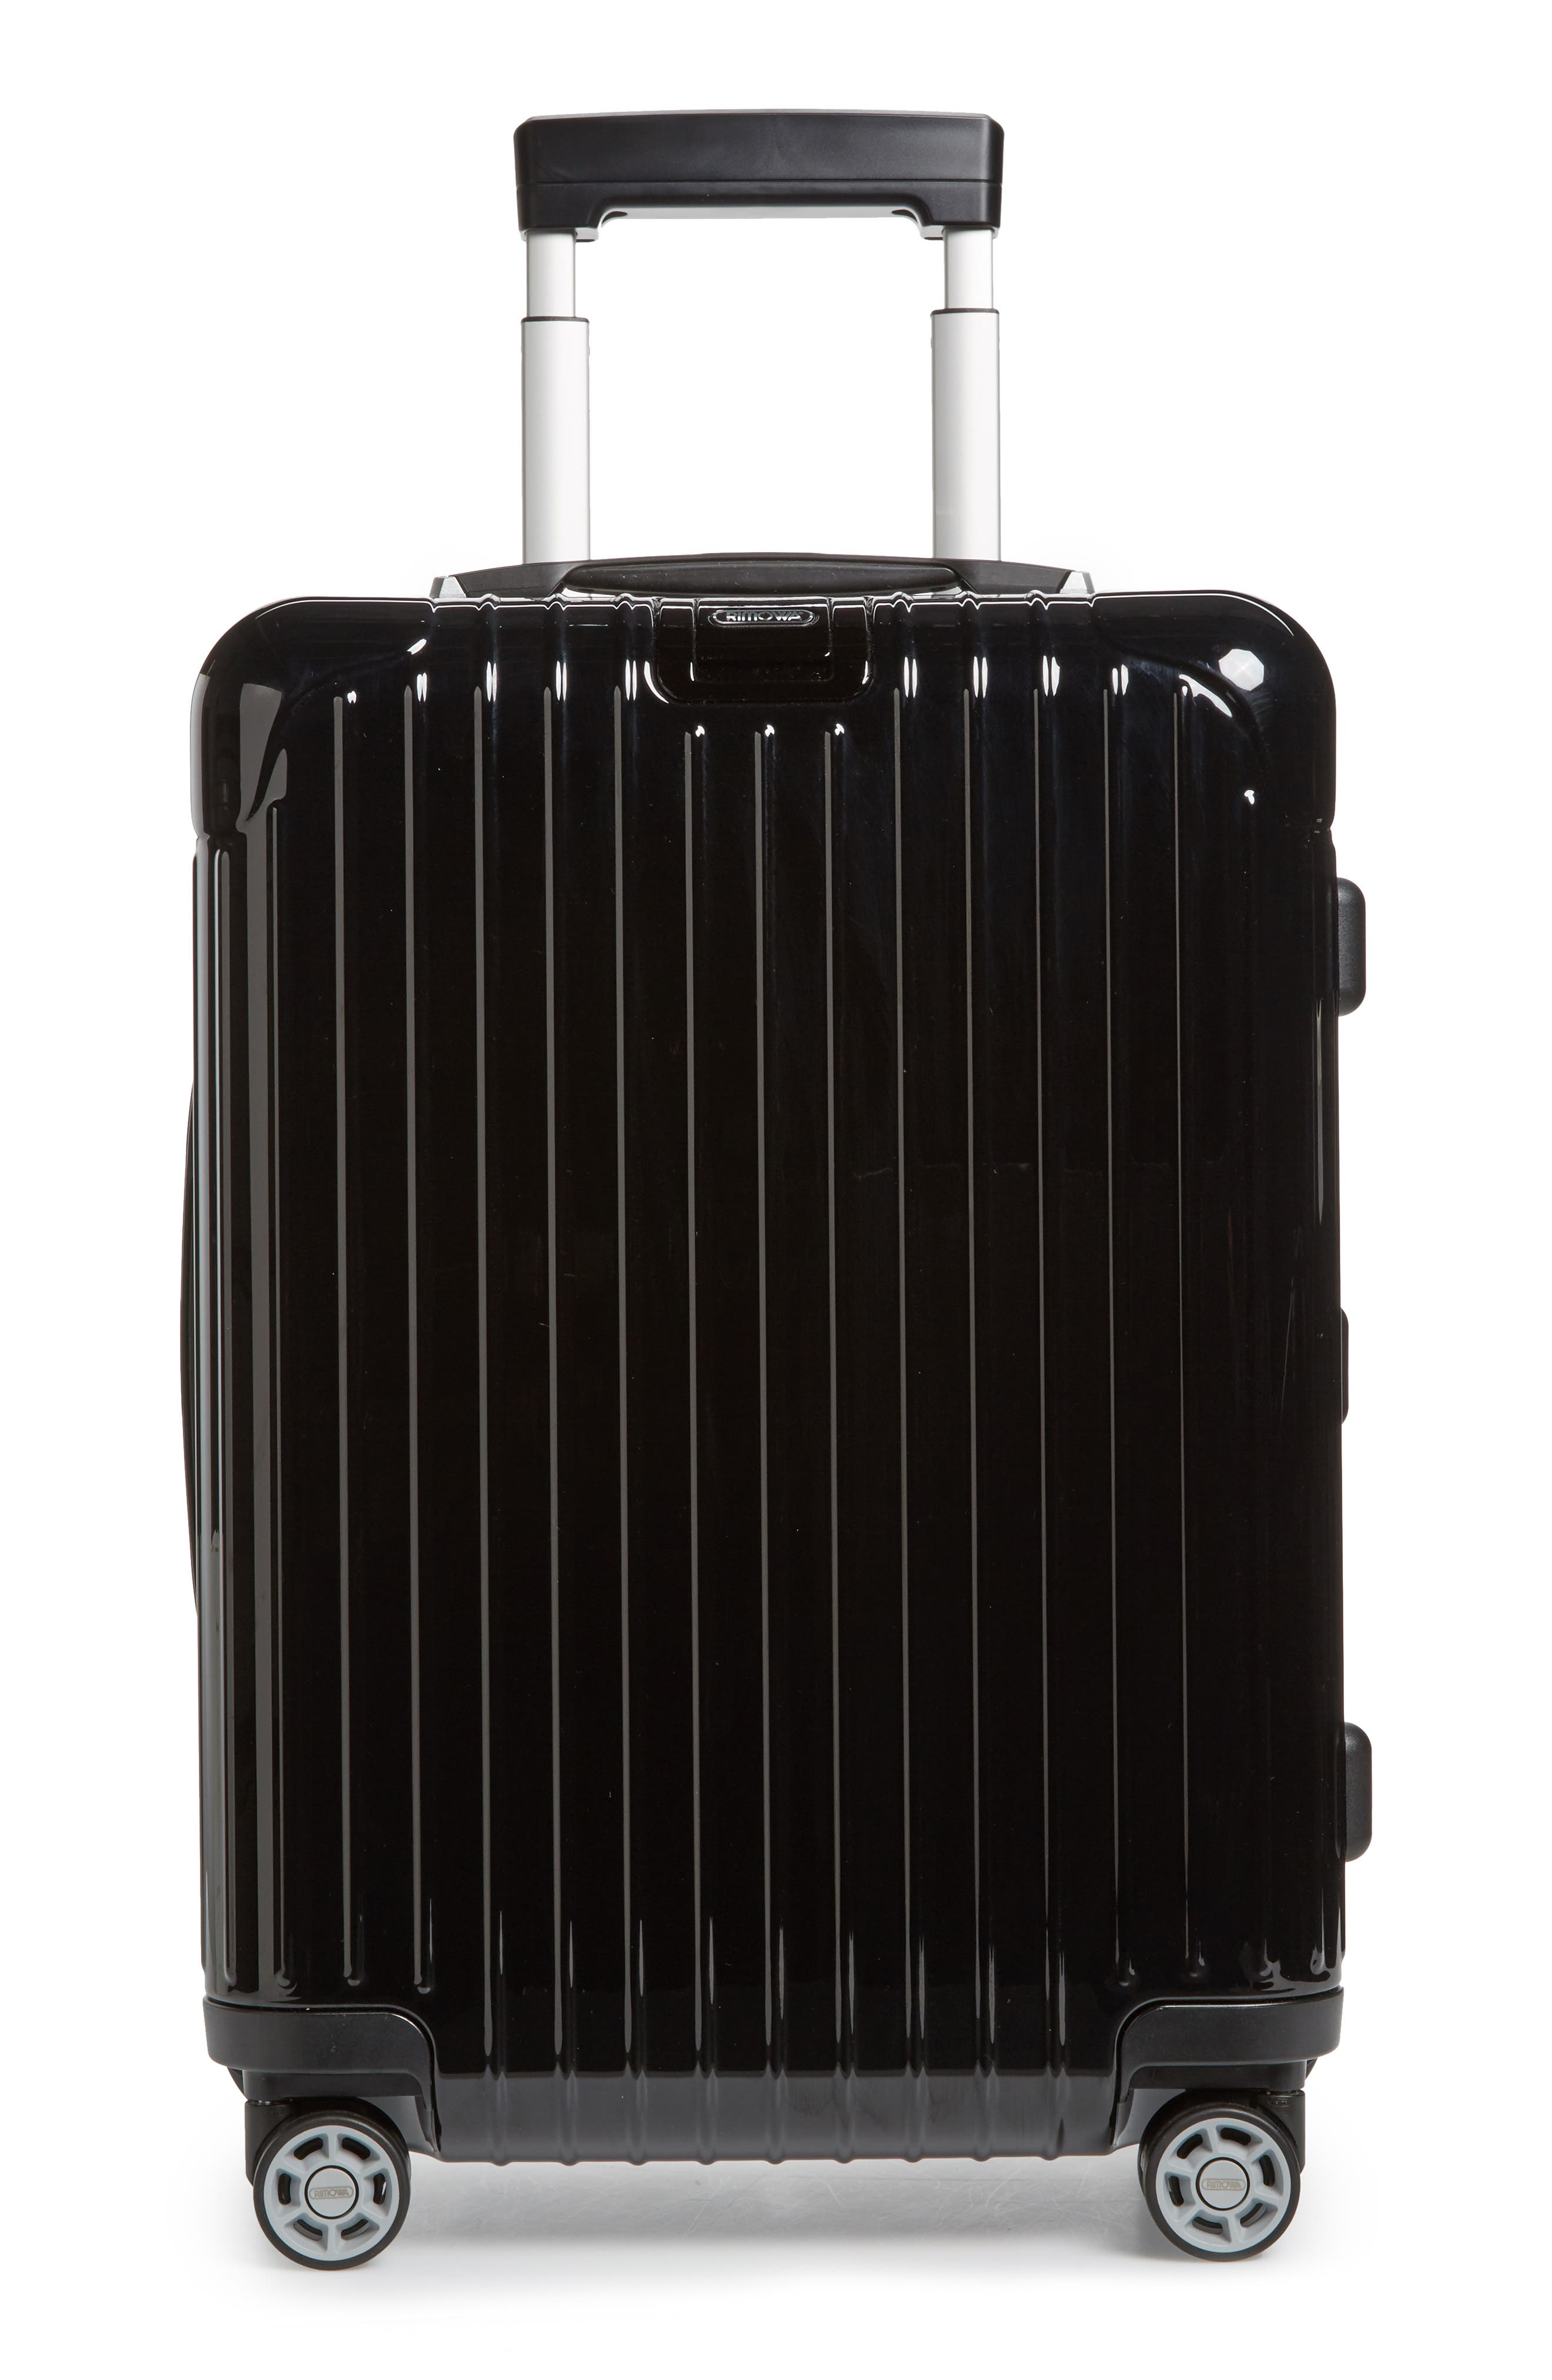 Salsa Deluxe 22-Inch Cabin Multiwheel<sup>®</sup> Carry-On,                             Main thumbnail 1, color,                             001